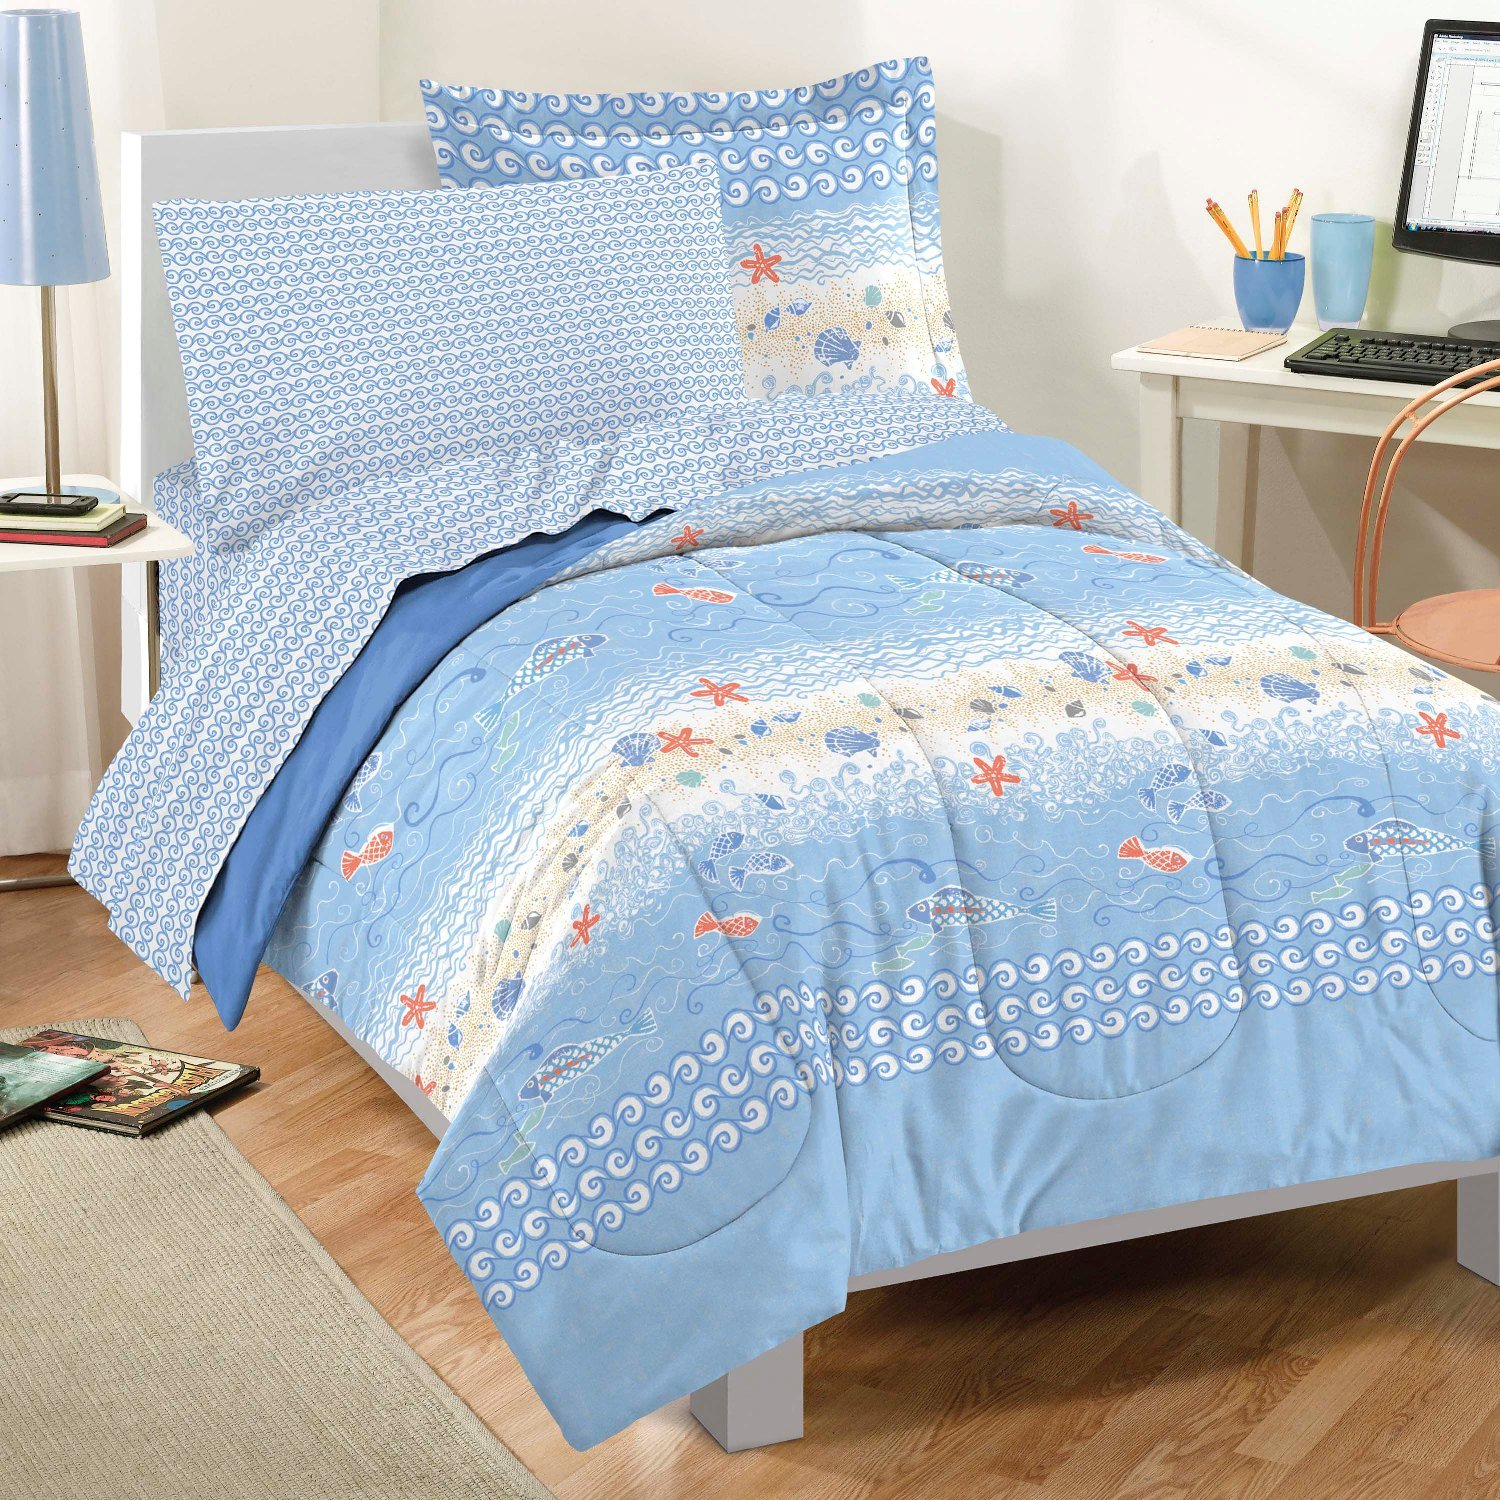 Beach comforters quilts ease bedding with style - Bring your bedroom to life with great comforter sets ...